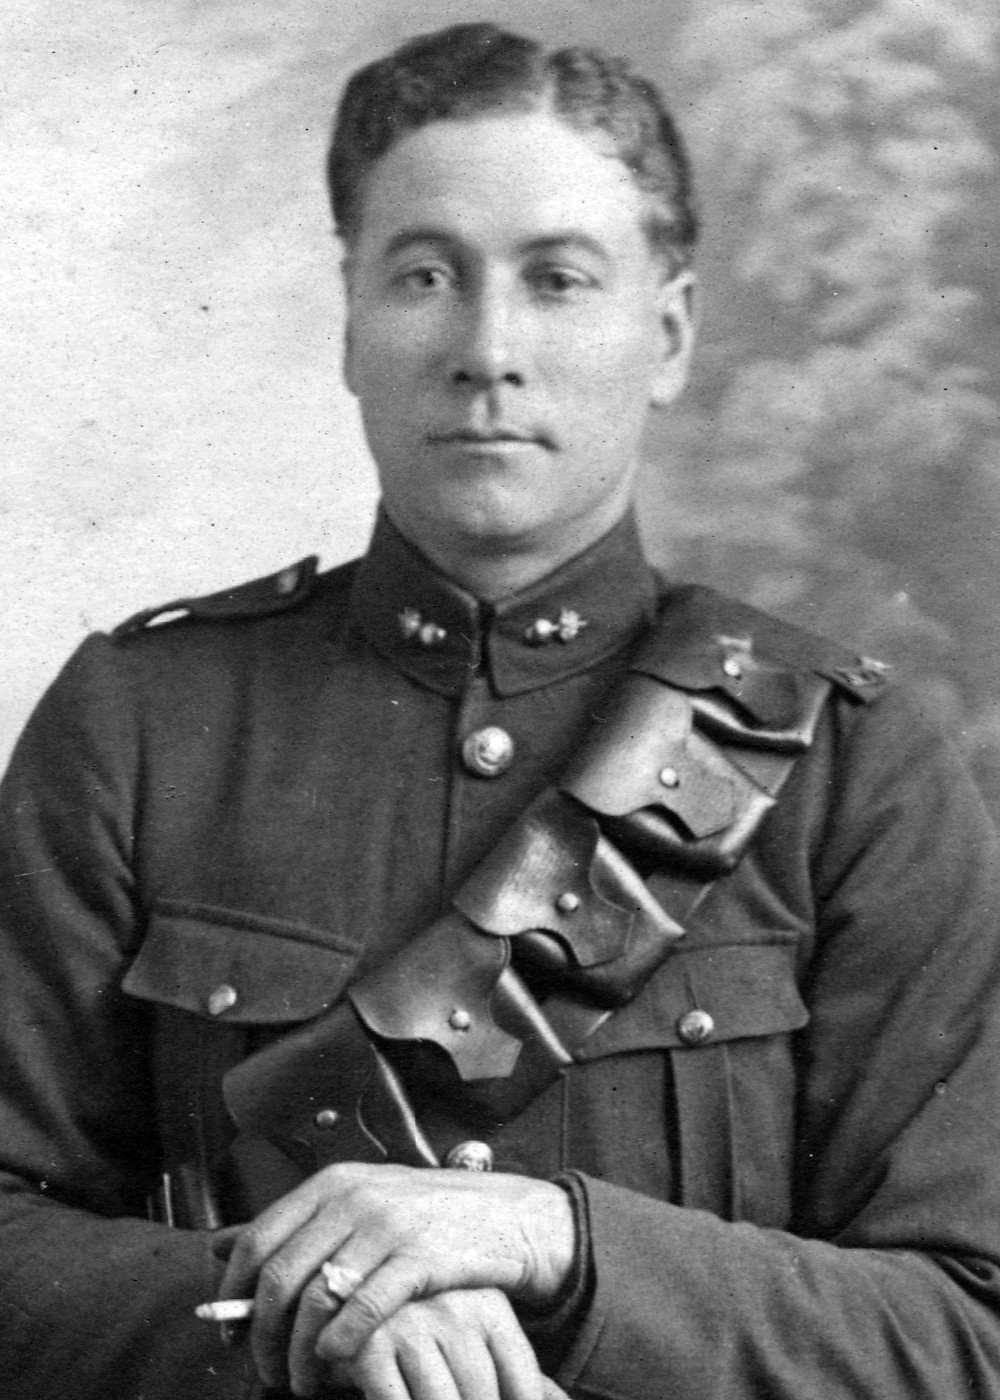 18538 Ernest James O'Neill, Attested in UK 17/7/1916